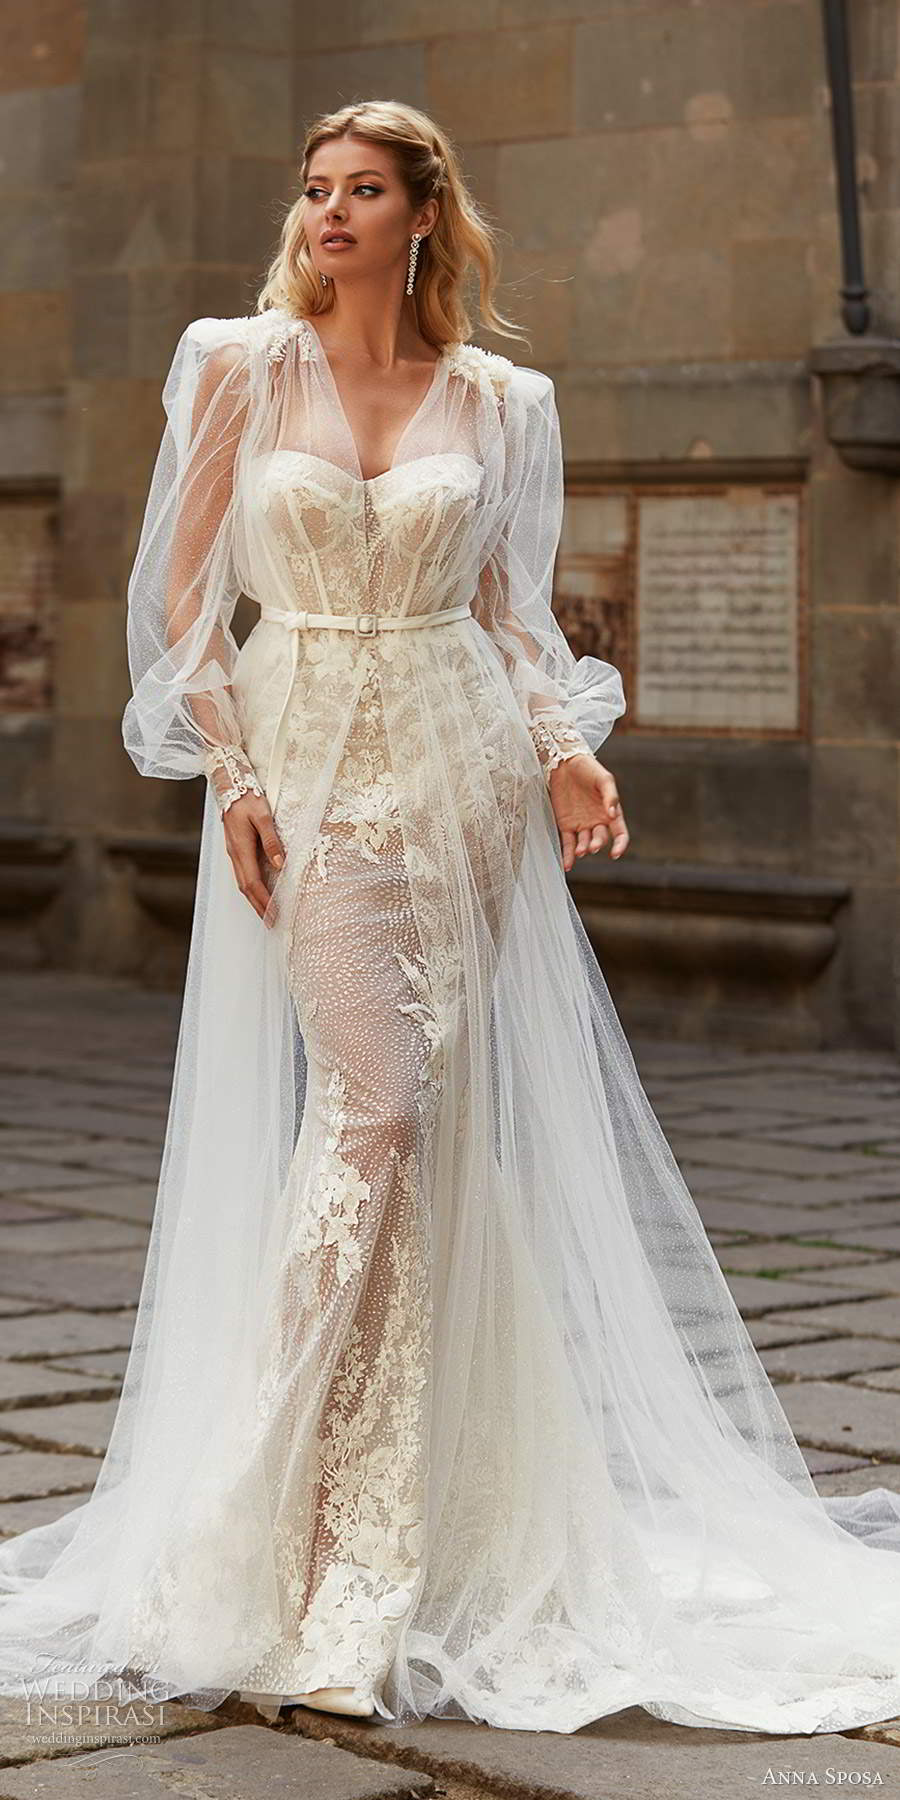 anna sposa 2021 bridal sheer long puff sleeve coat strapless sweetheart neckline fully embellished mermaid sheath wedding dress champagne color chapel train  (3) mv